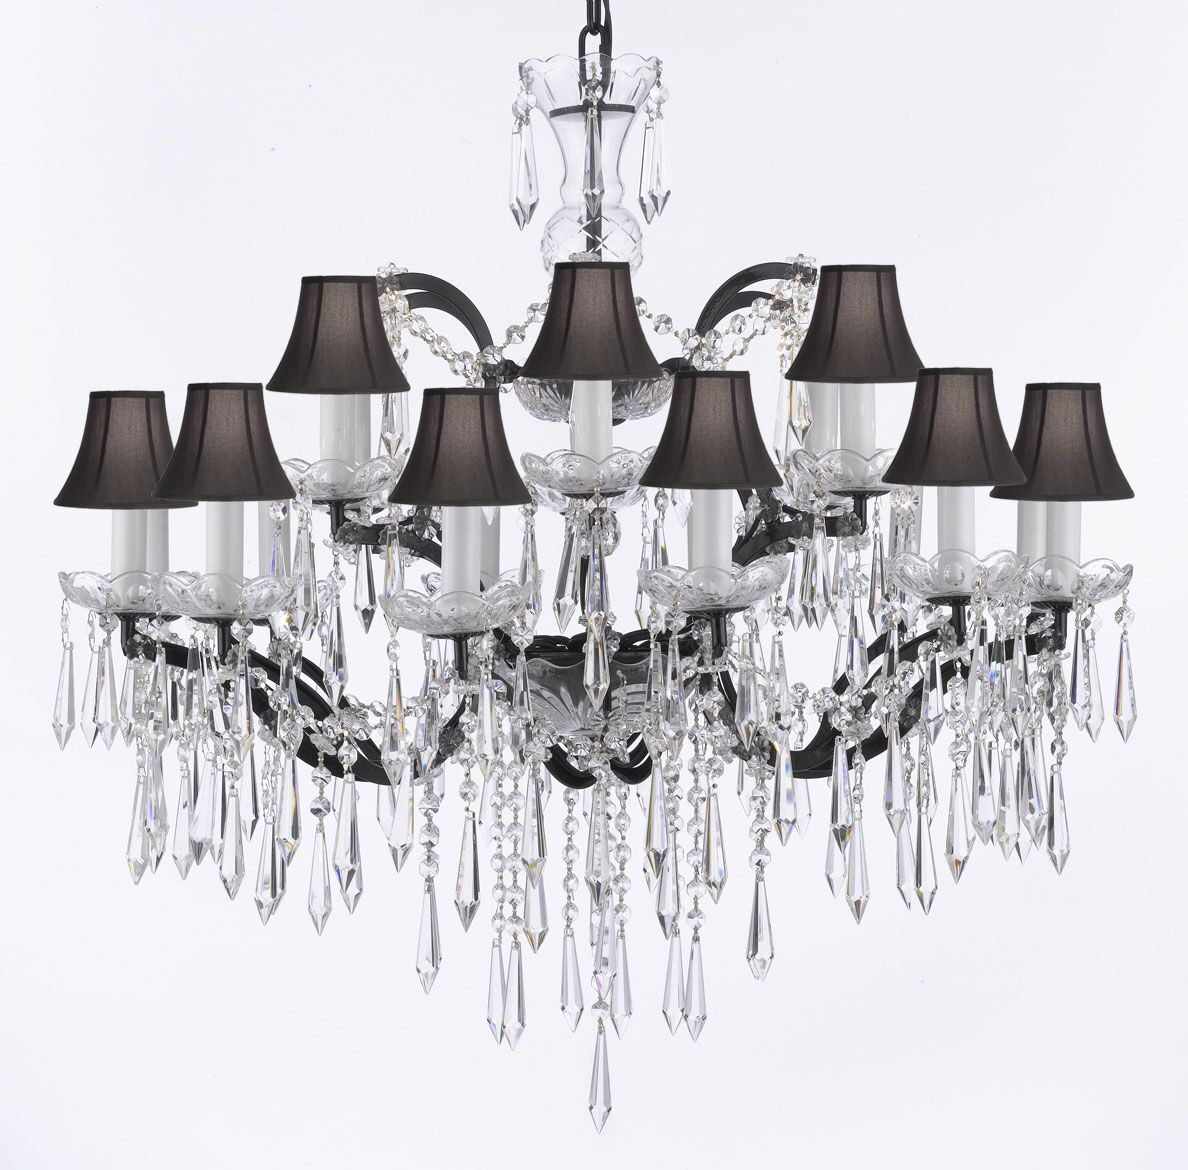 Clemence 18-Light Shaded Chandelier